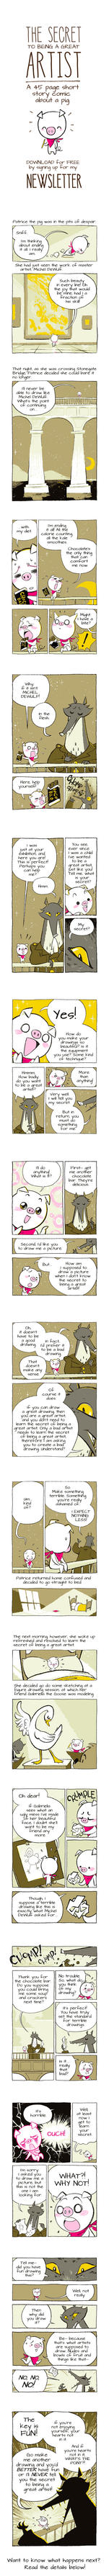 The Secret to Being a Great Artist by StephenMcCranie